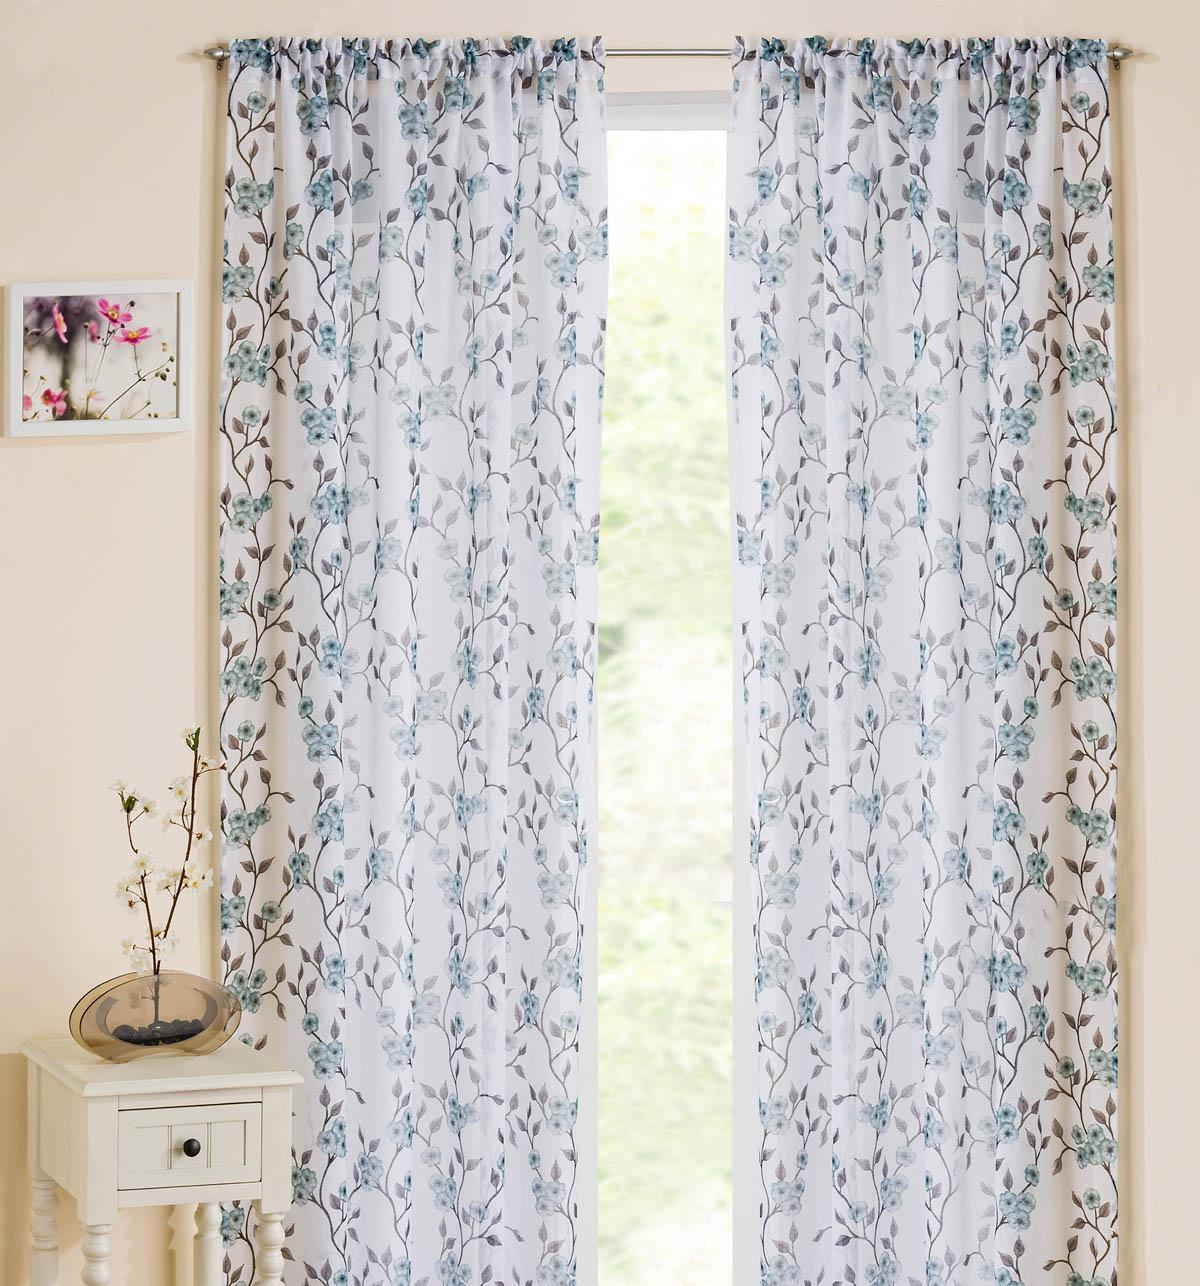 Blue Floral Window Curtains   Blossom Slot Top Voile Panel  Blue Floral Curtains